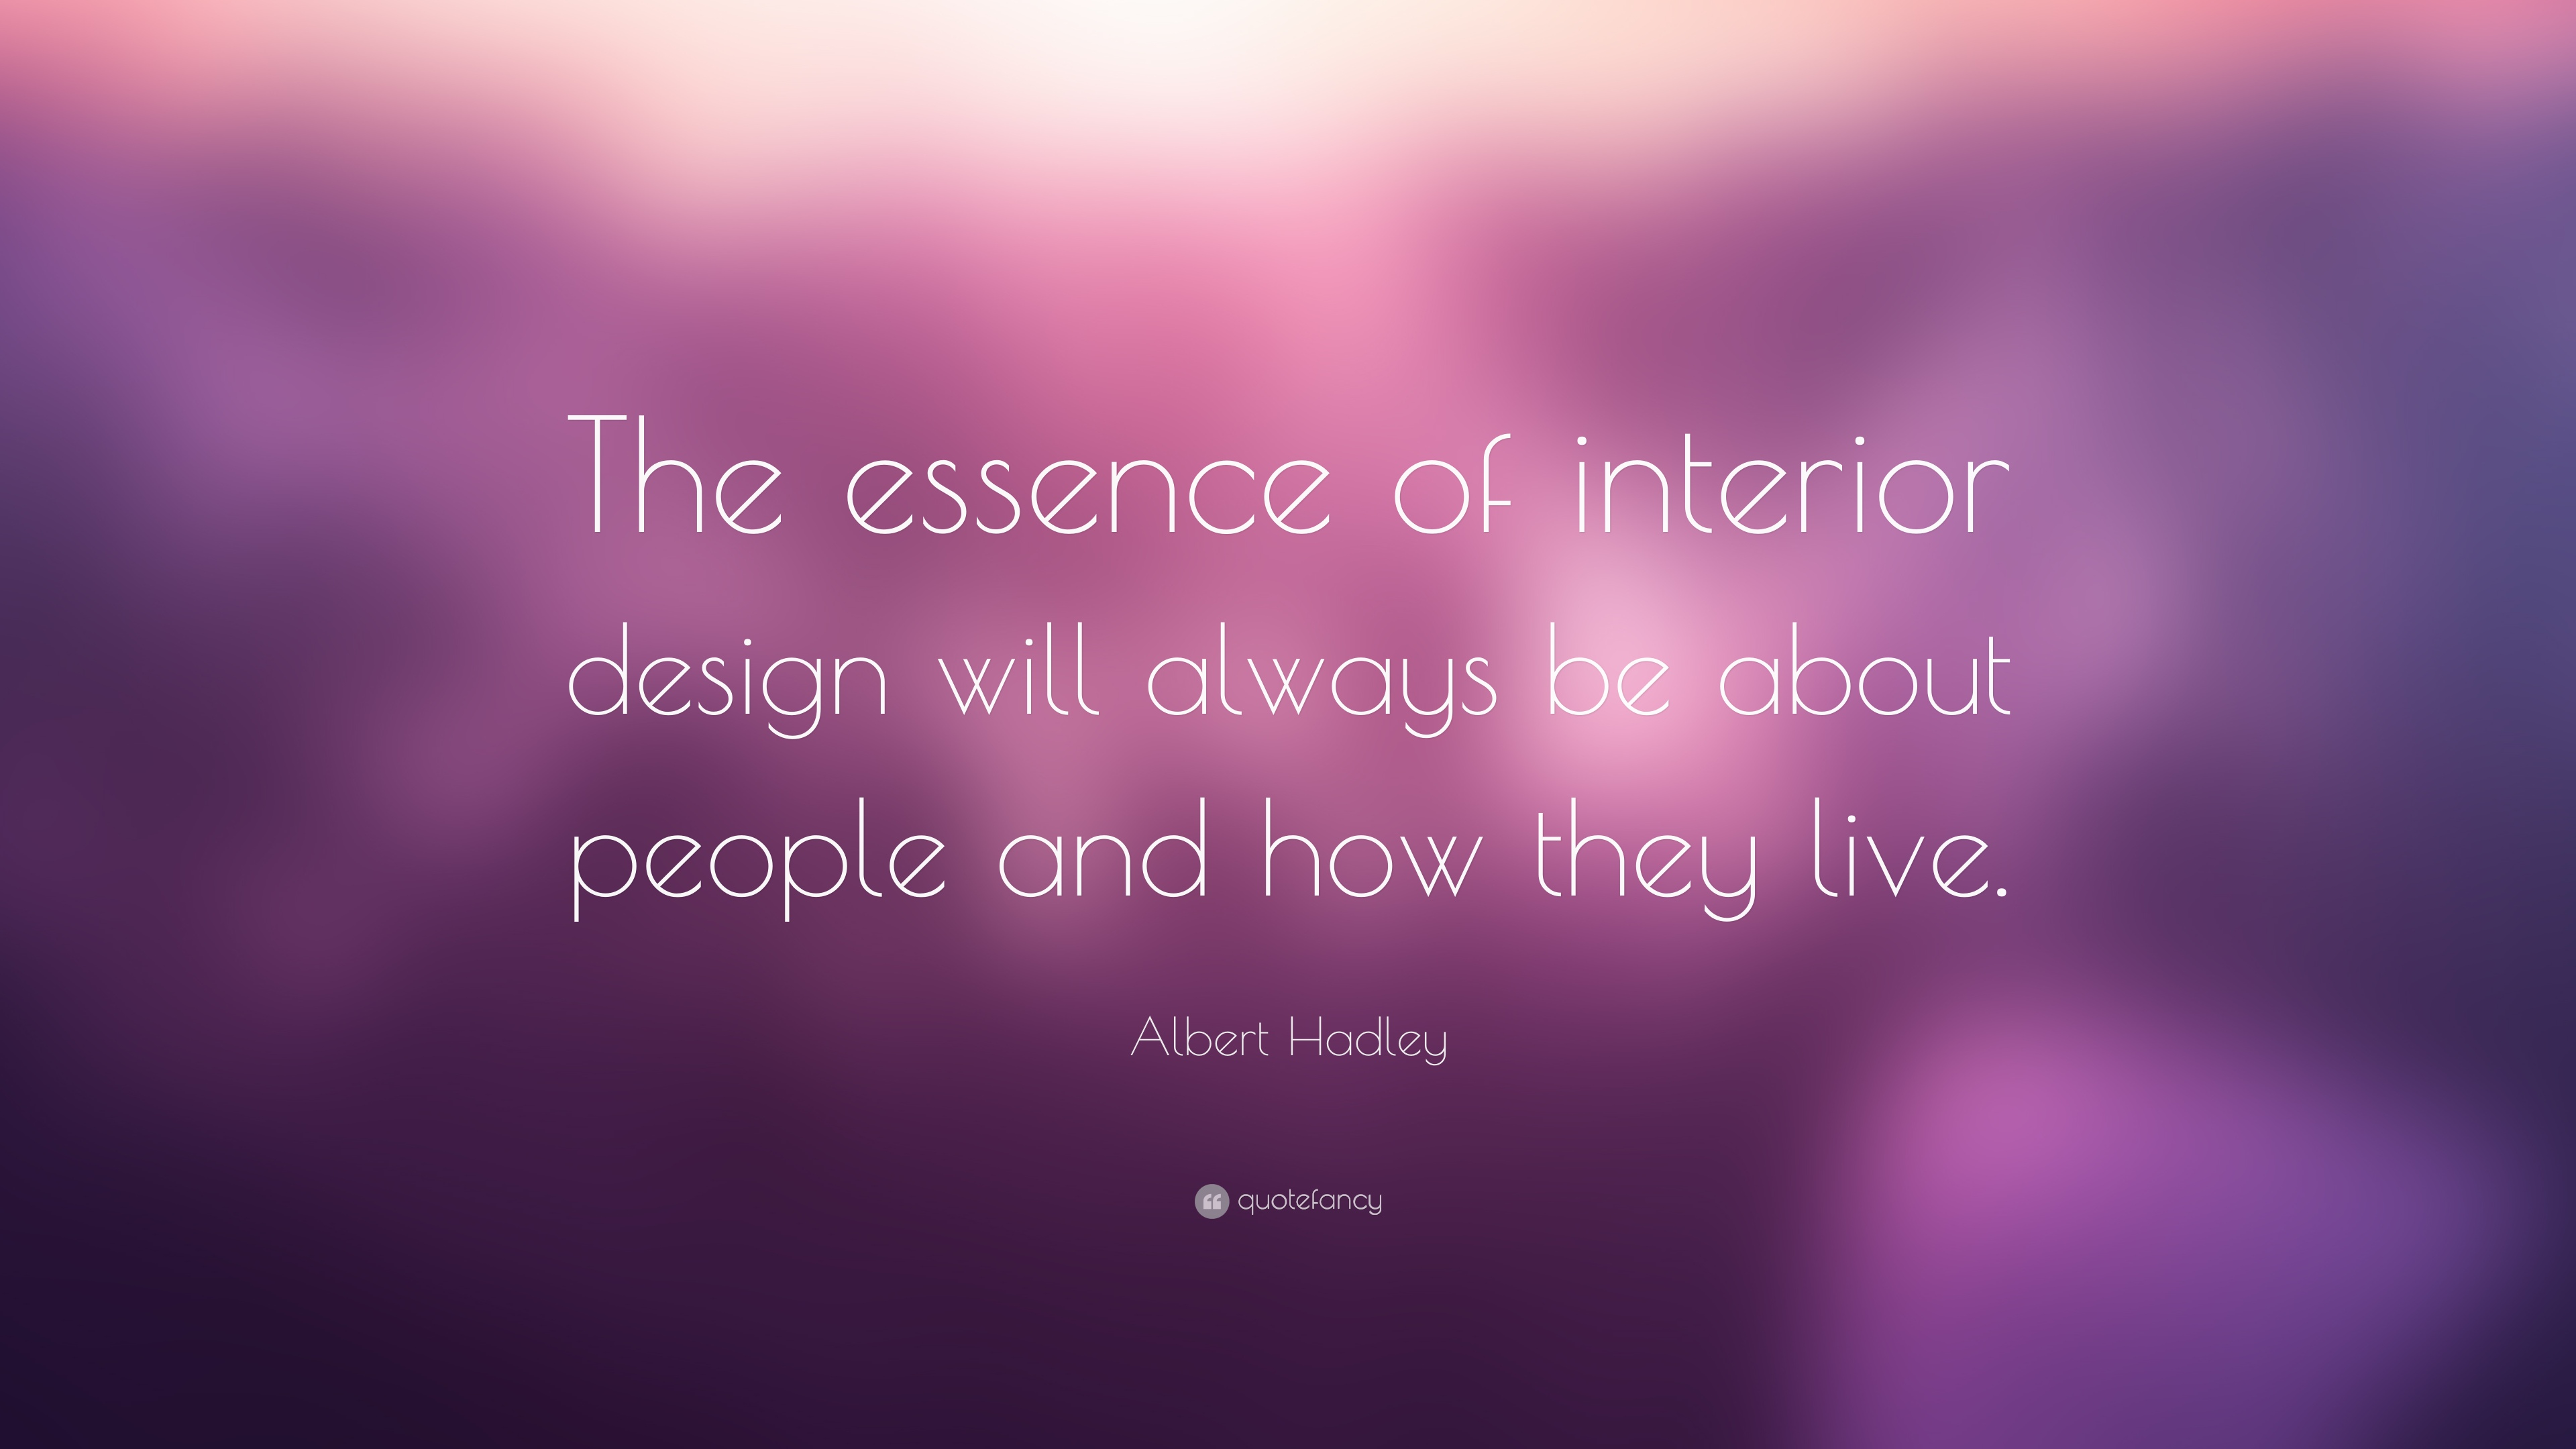 Albert hadley quote the essence of interior design will always be about people and